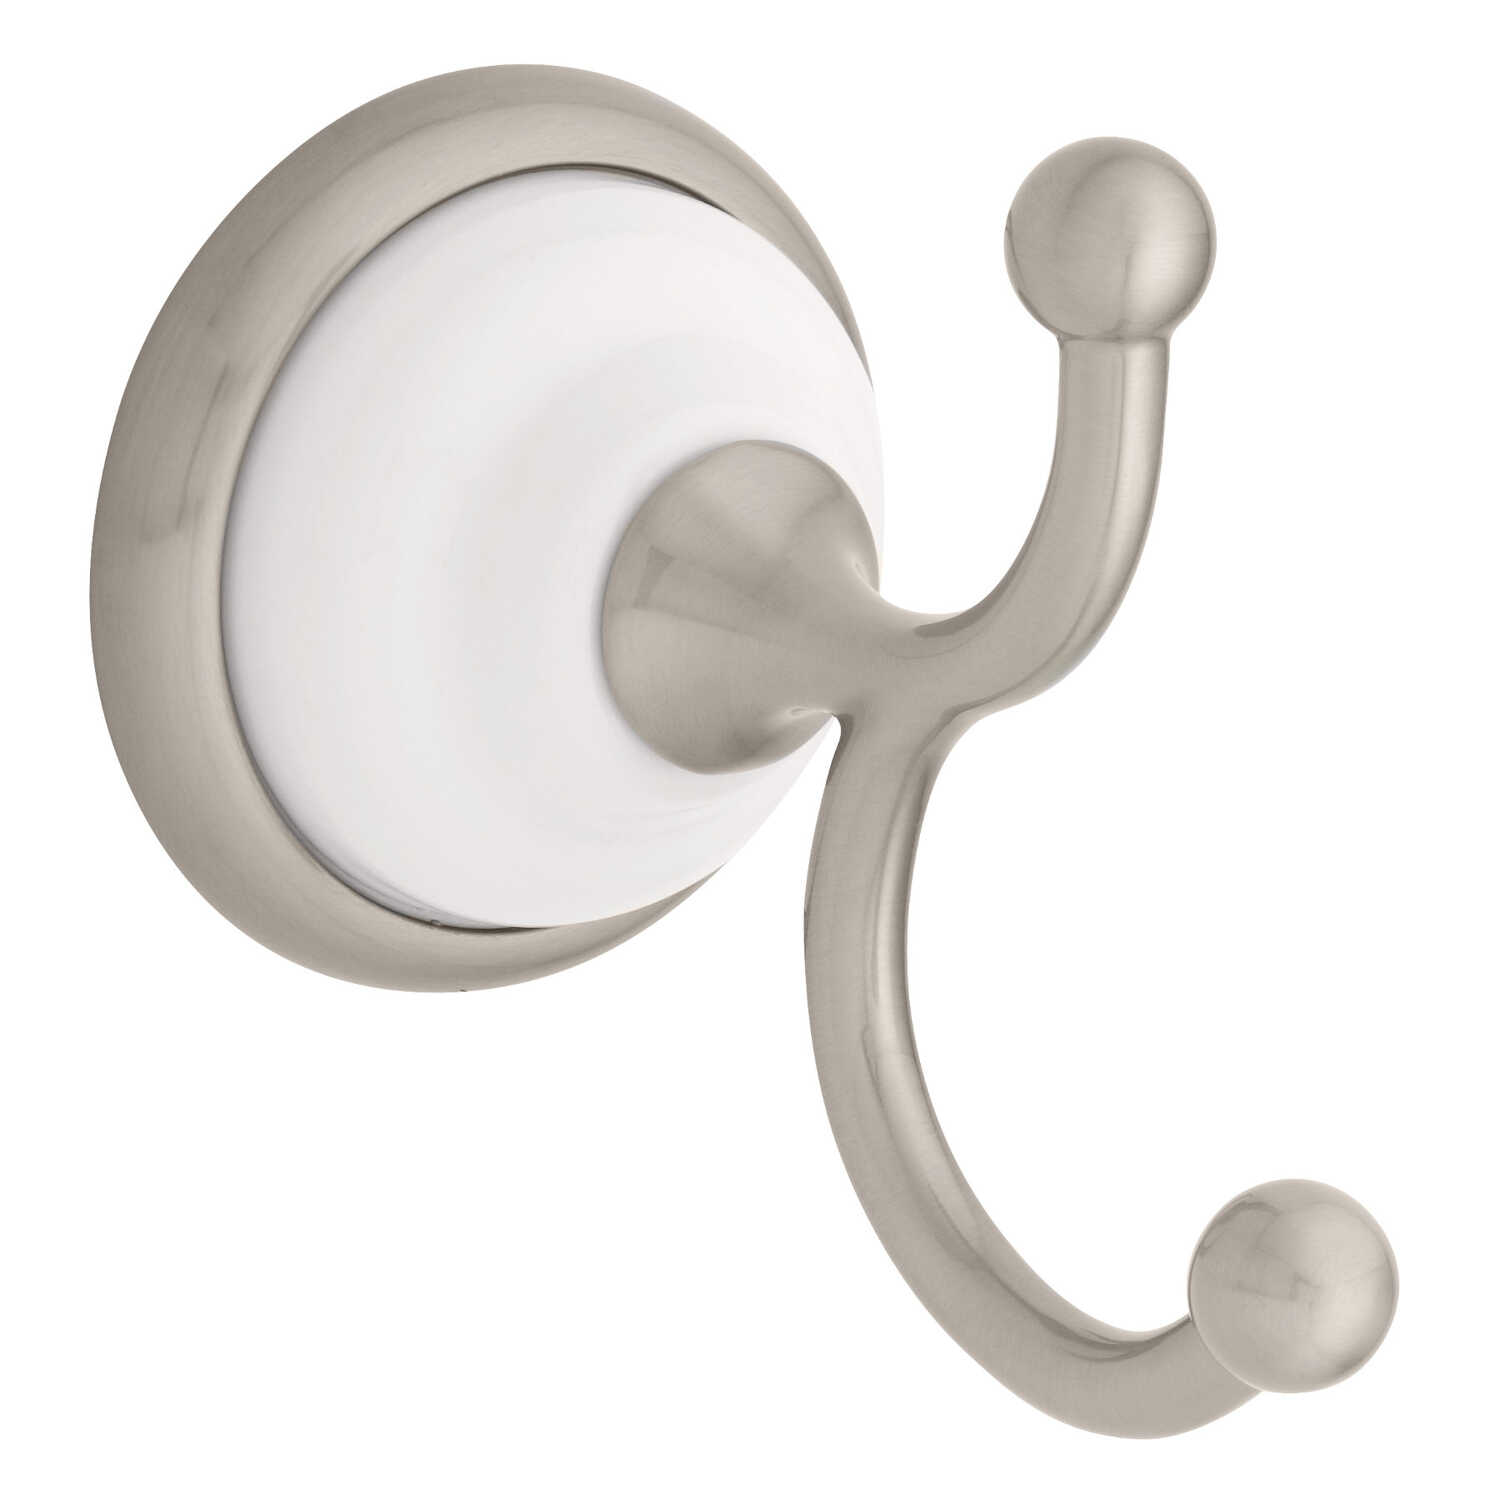 Bellini  Robe Hook  7.9 in. H x 5.1 in. W x 3.2 in. L Polished Chrome  White  Die Cast Zinc